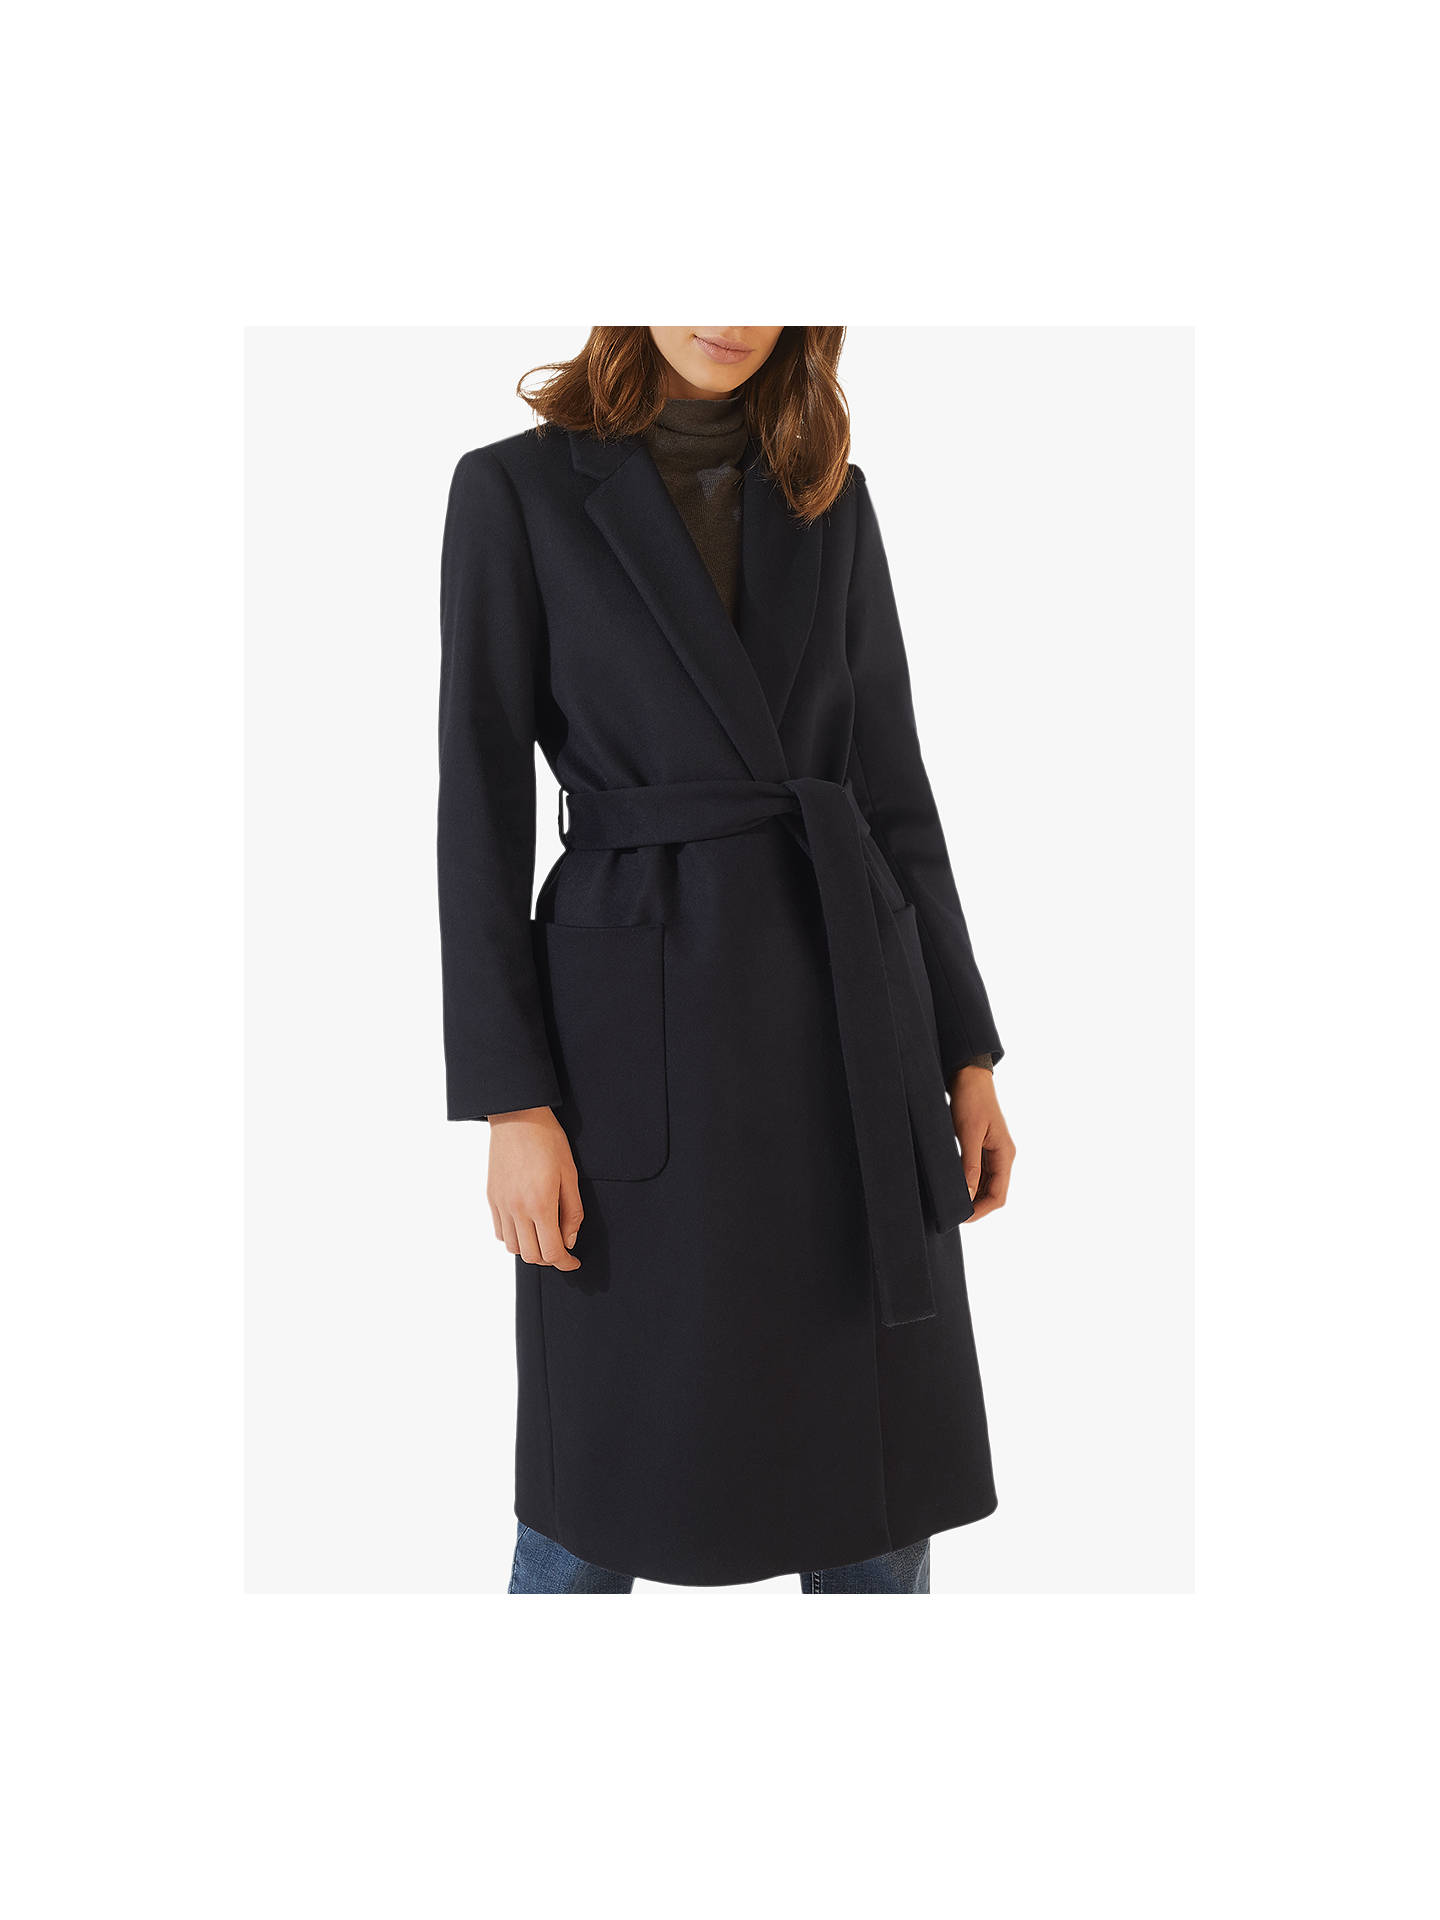 Jigsaw Narrow Belted Coat, Black by Jigsaw